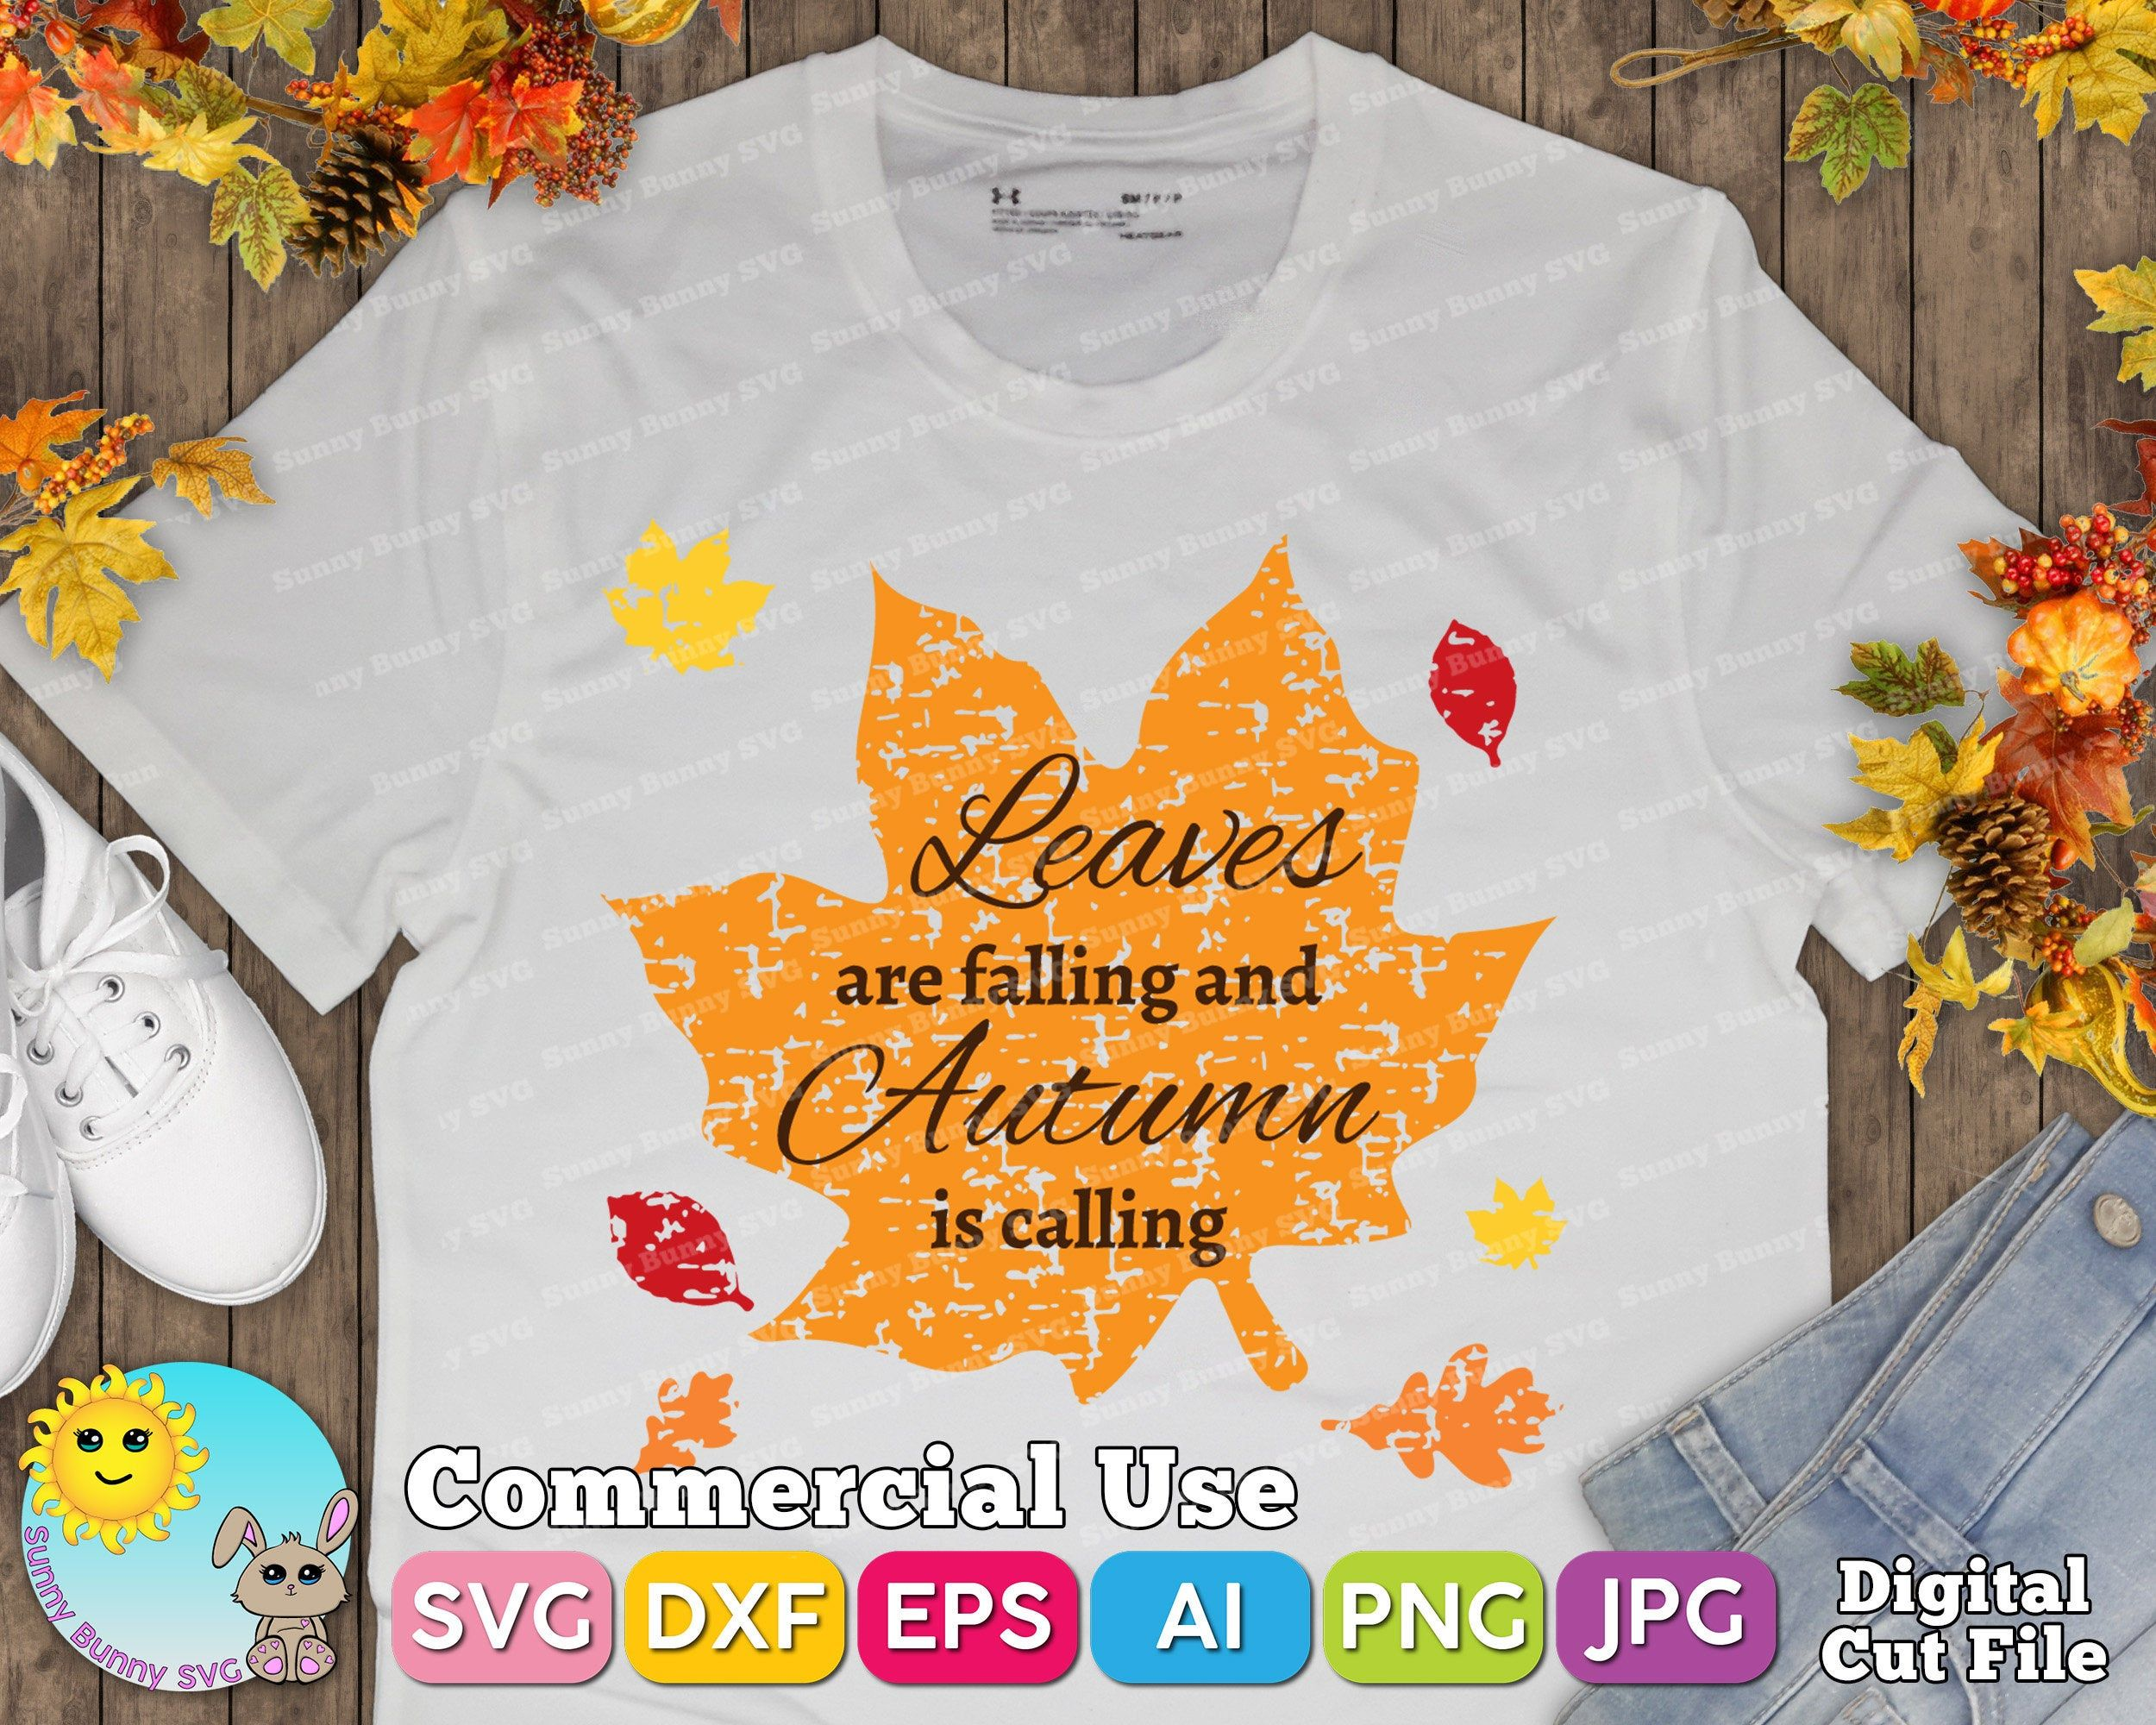 Leaves Are Falling And Autumn Is Calling Shirt Svg Dxf Eps Ai Etsy In 2020 Bunny Svg Paper Cutout Dxf